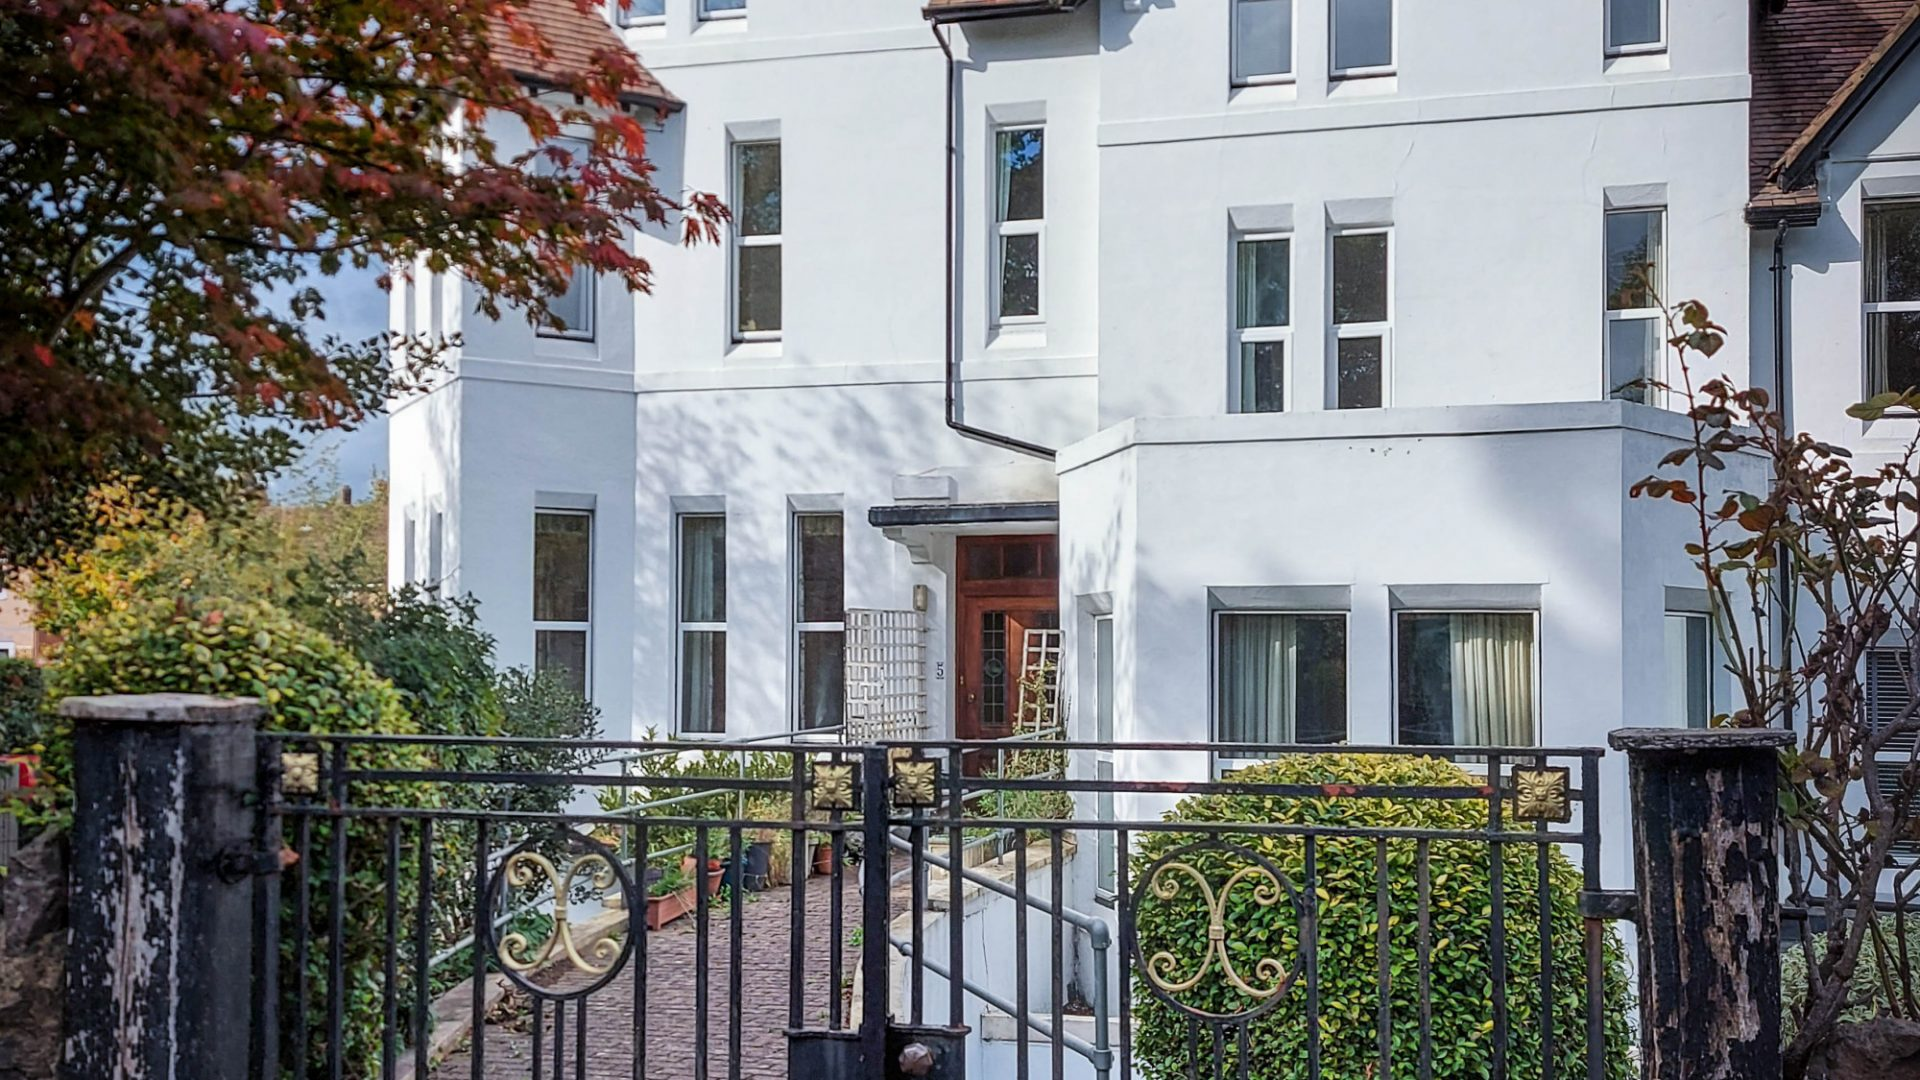 Summerfield Court, Malvern for sale with Mr and Mrs Clarke estate agent